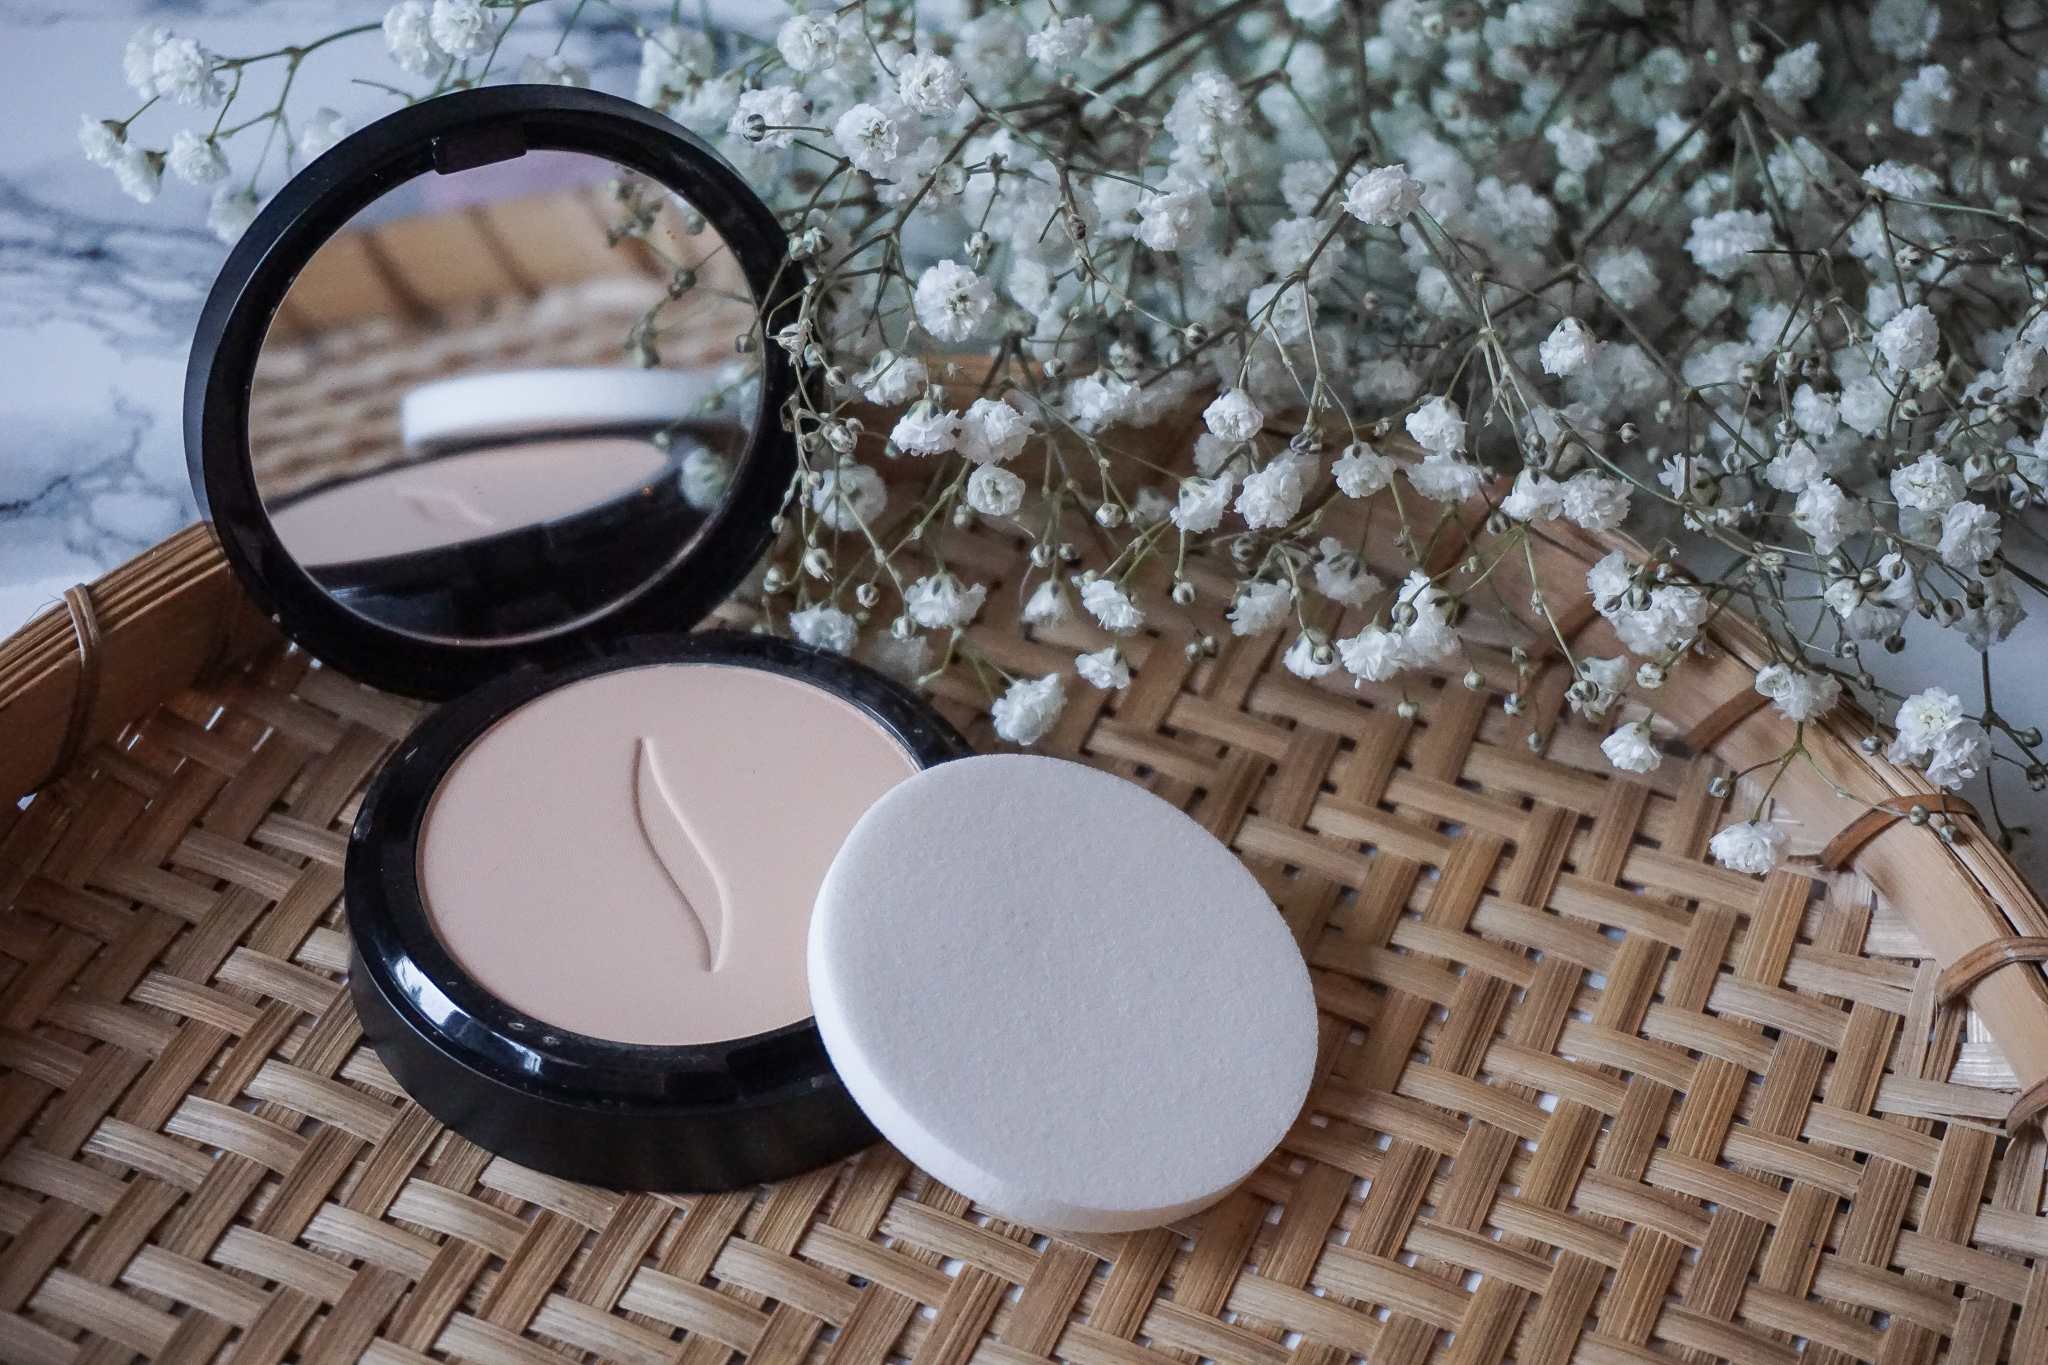 Sephora Matte perfection Powder Foundation REview